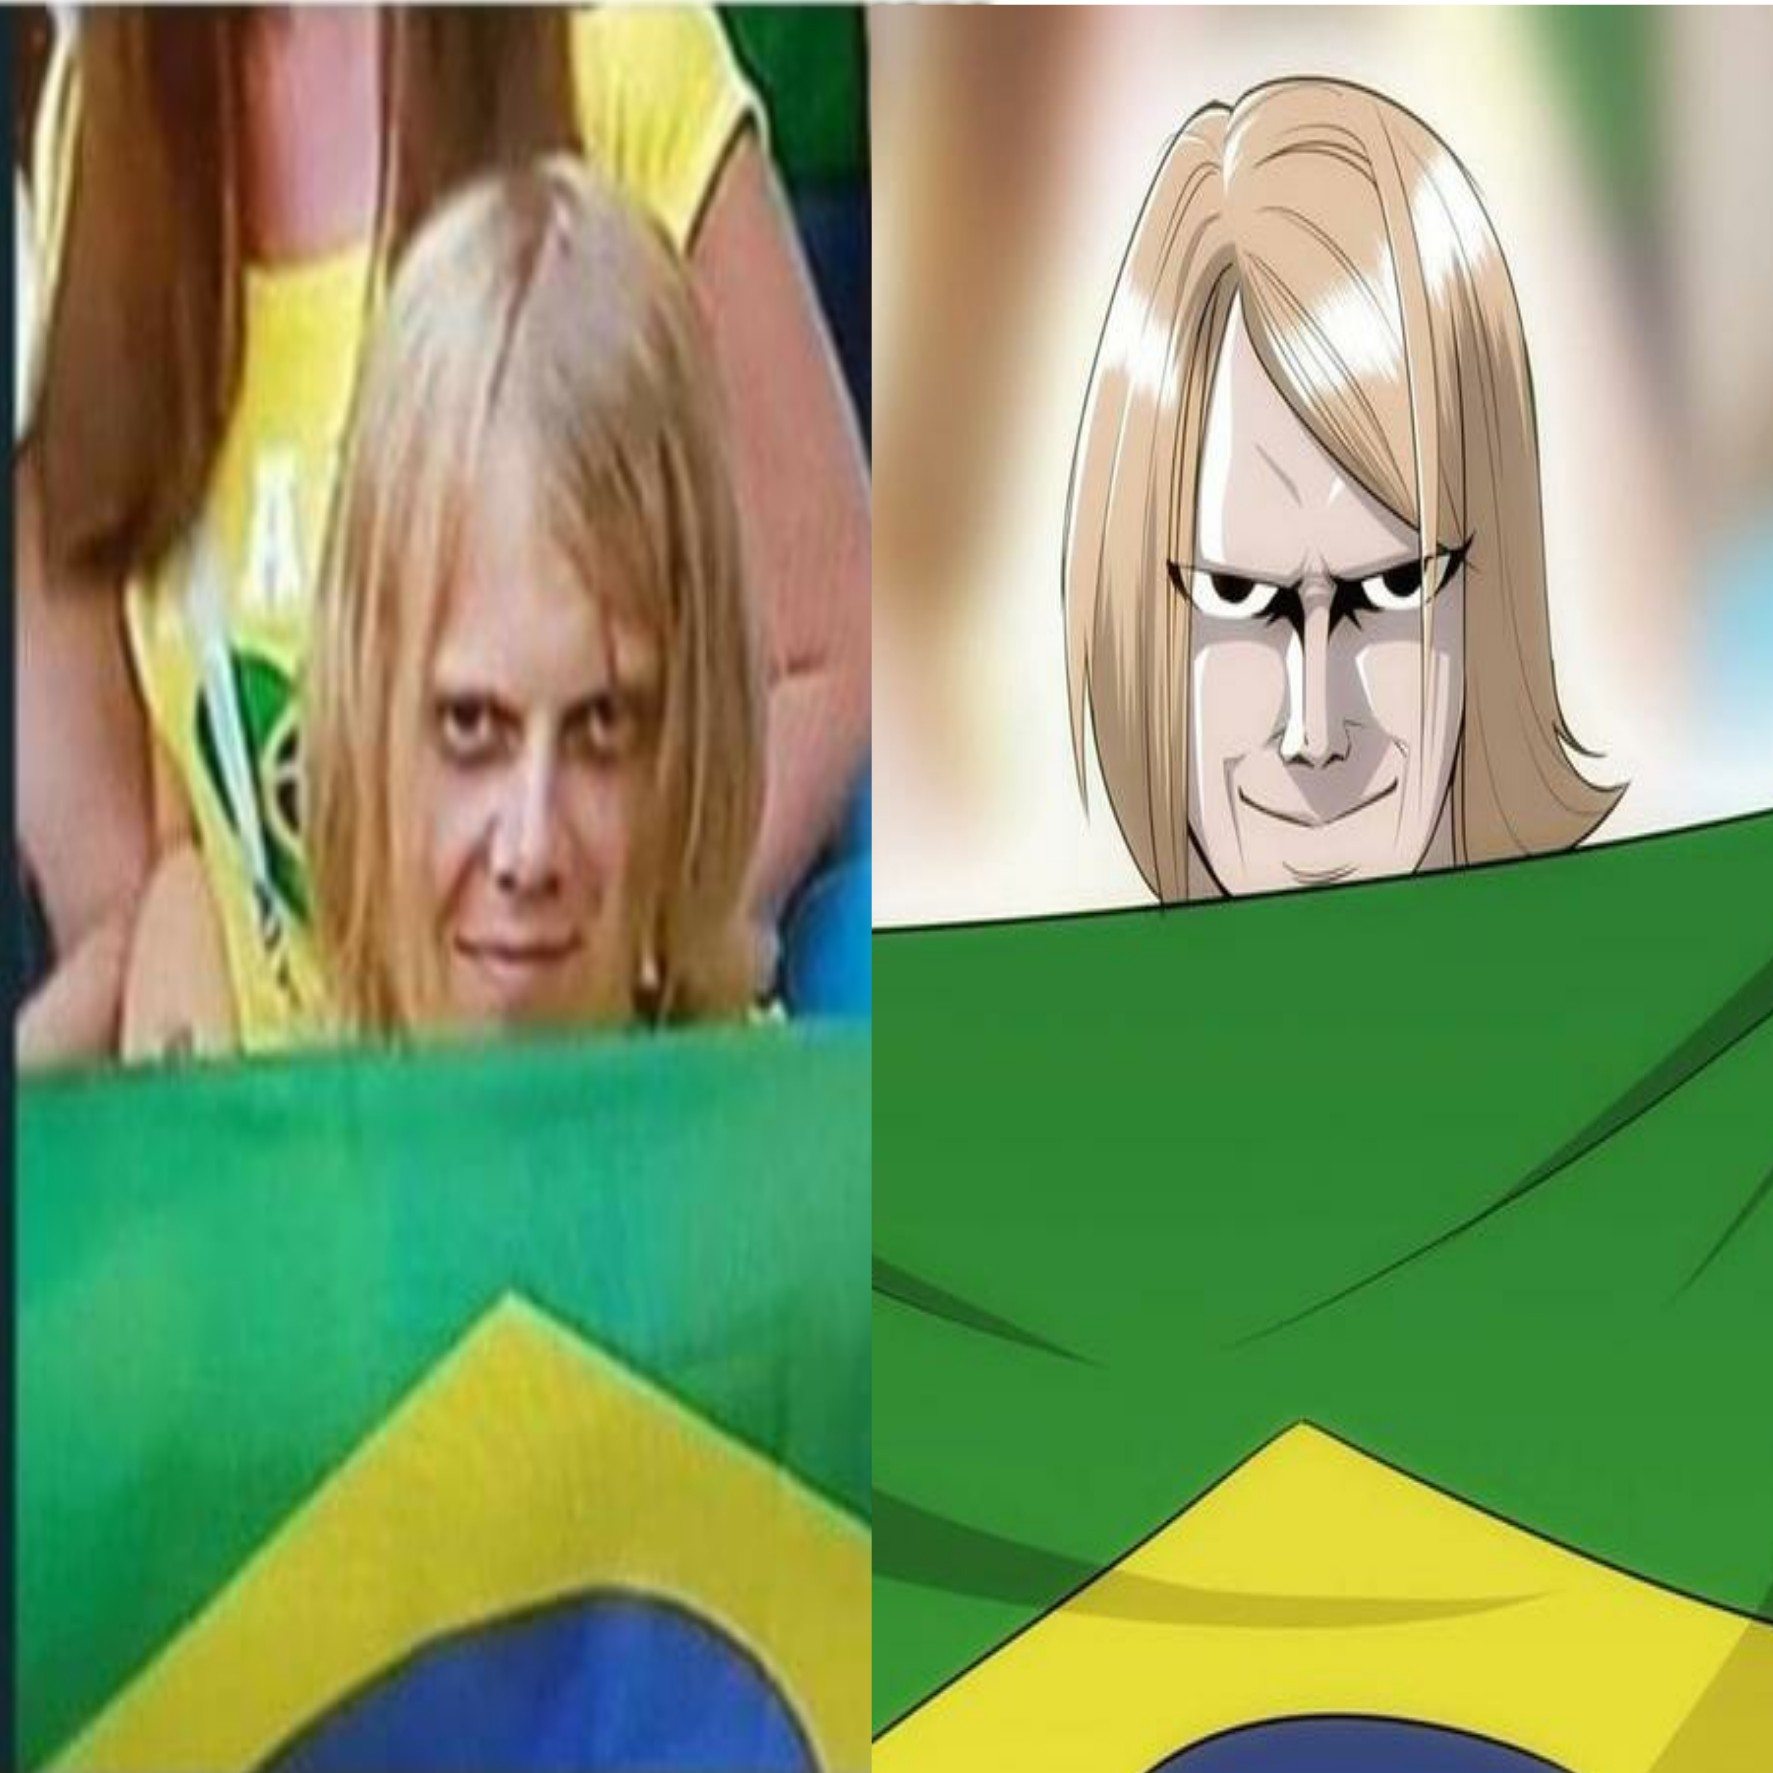 2018 fifa world cup russia sinister brazilian fan becomes meme